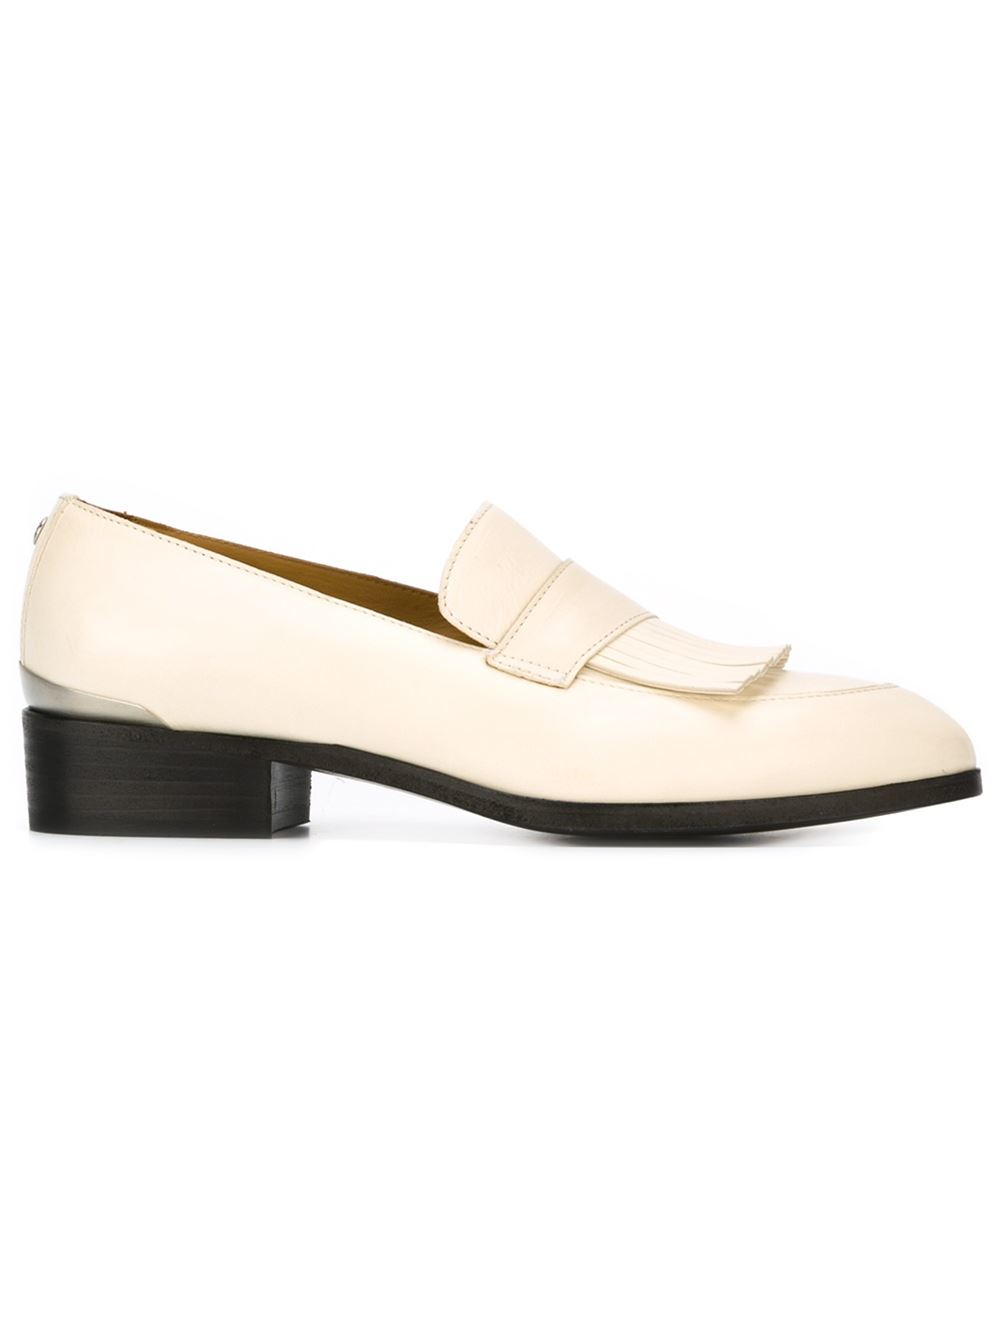 Buttero Leather Penny Loafers in White - Lyst